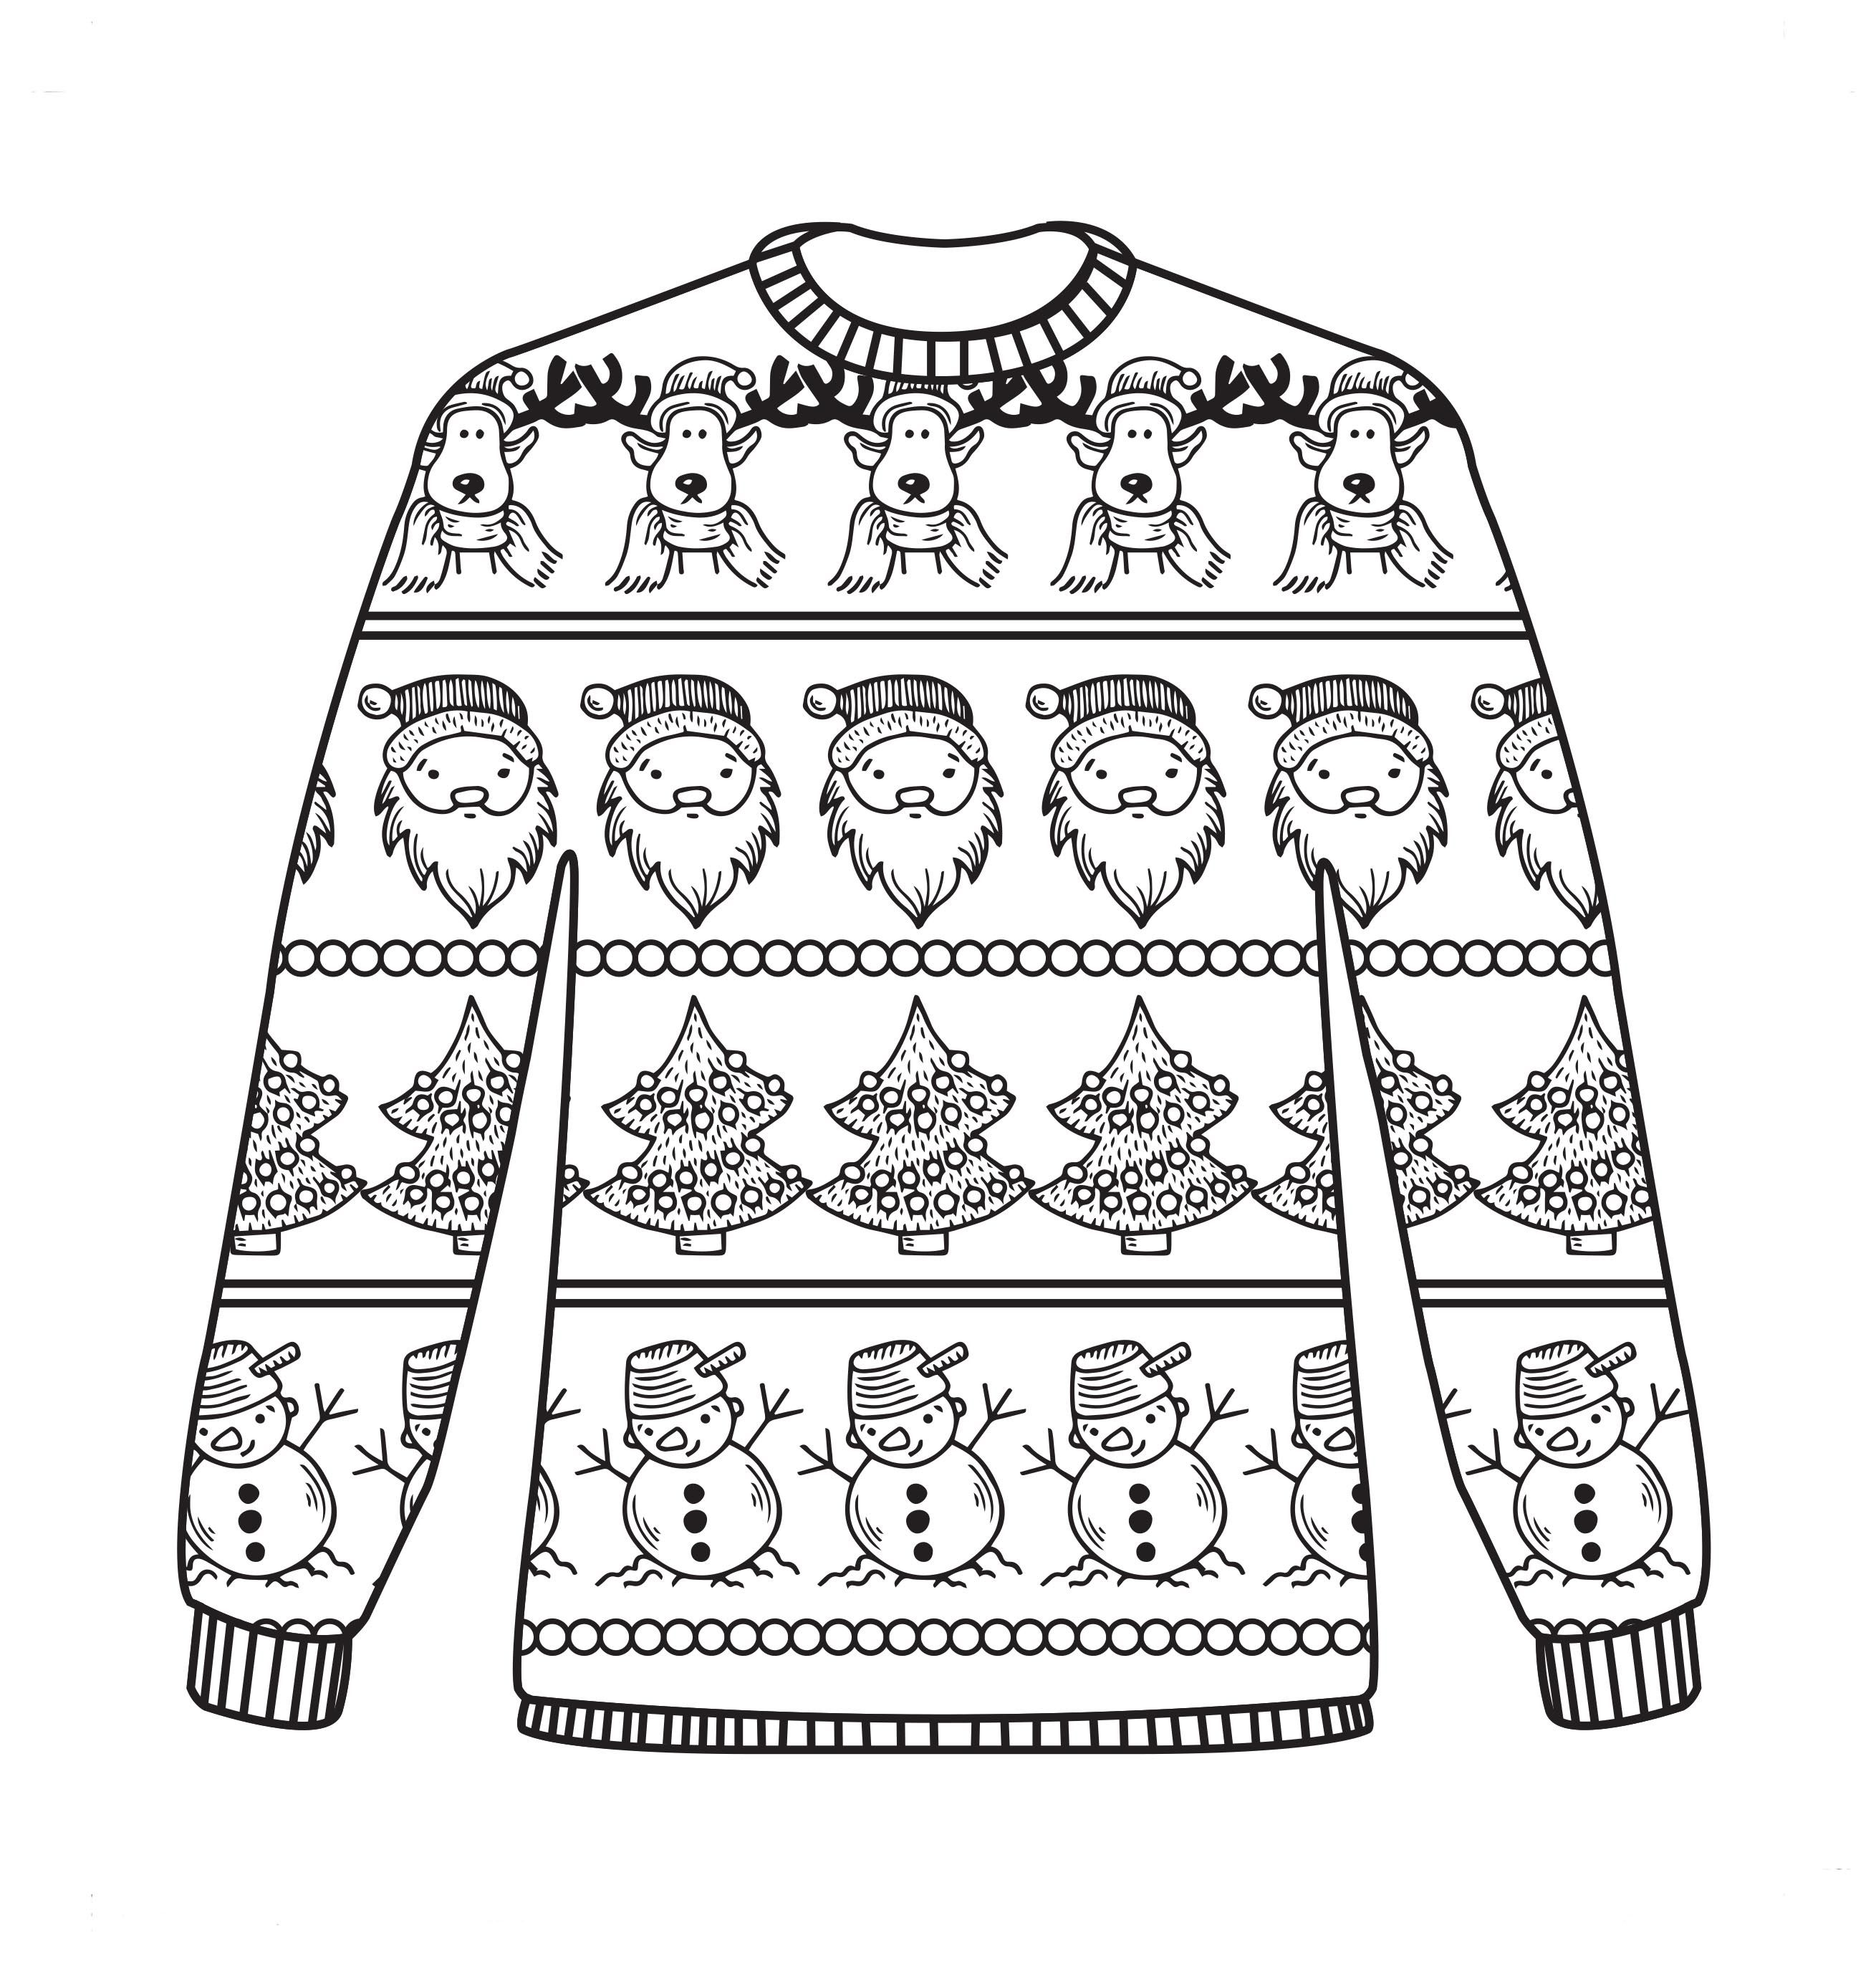 Free Christmas jumper colouring sheet! | Coloring Pages ...